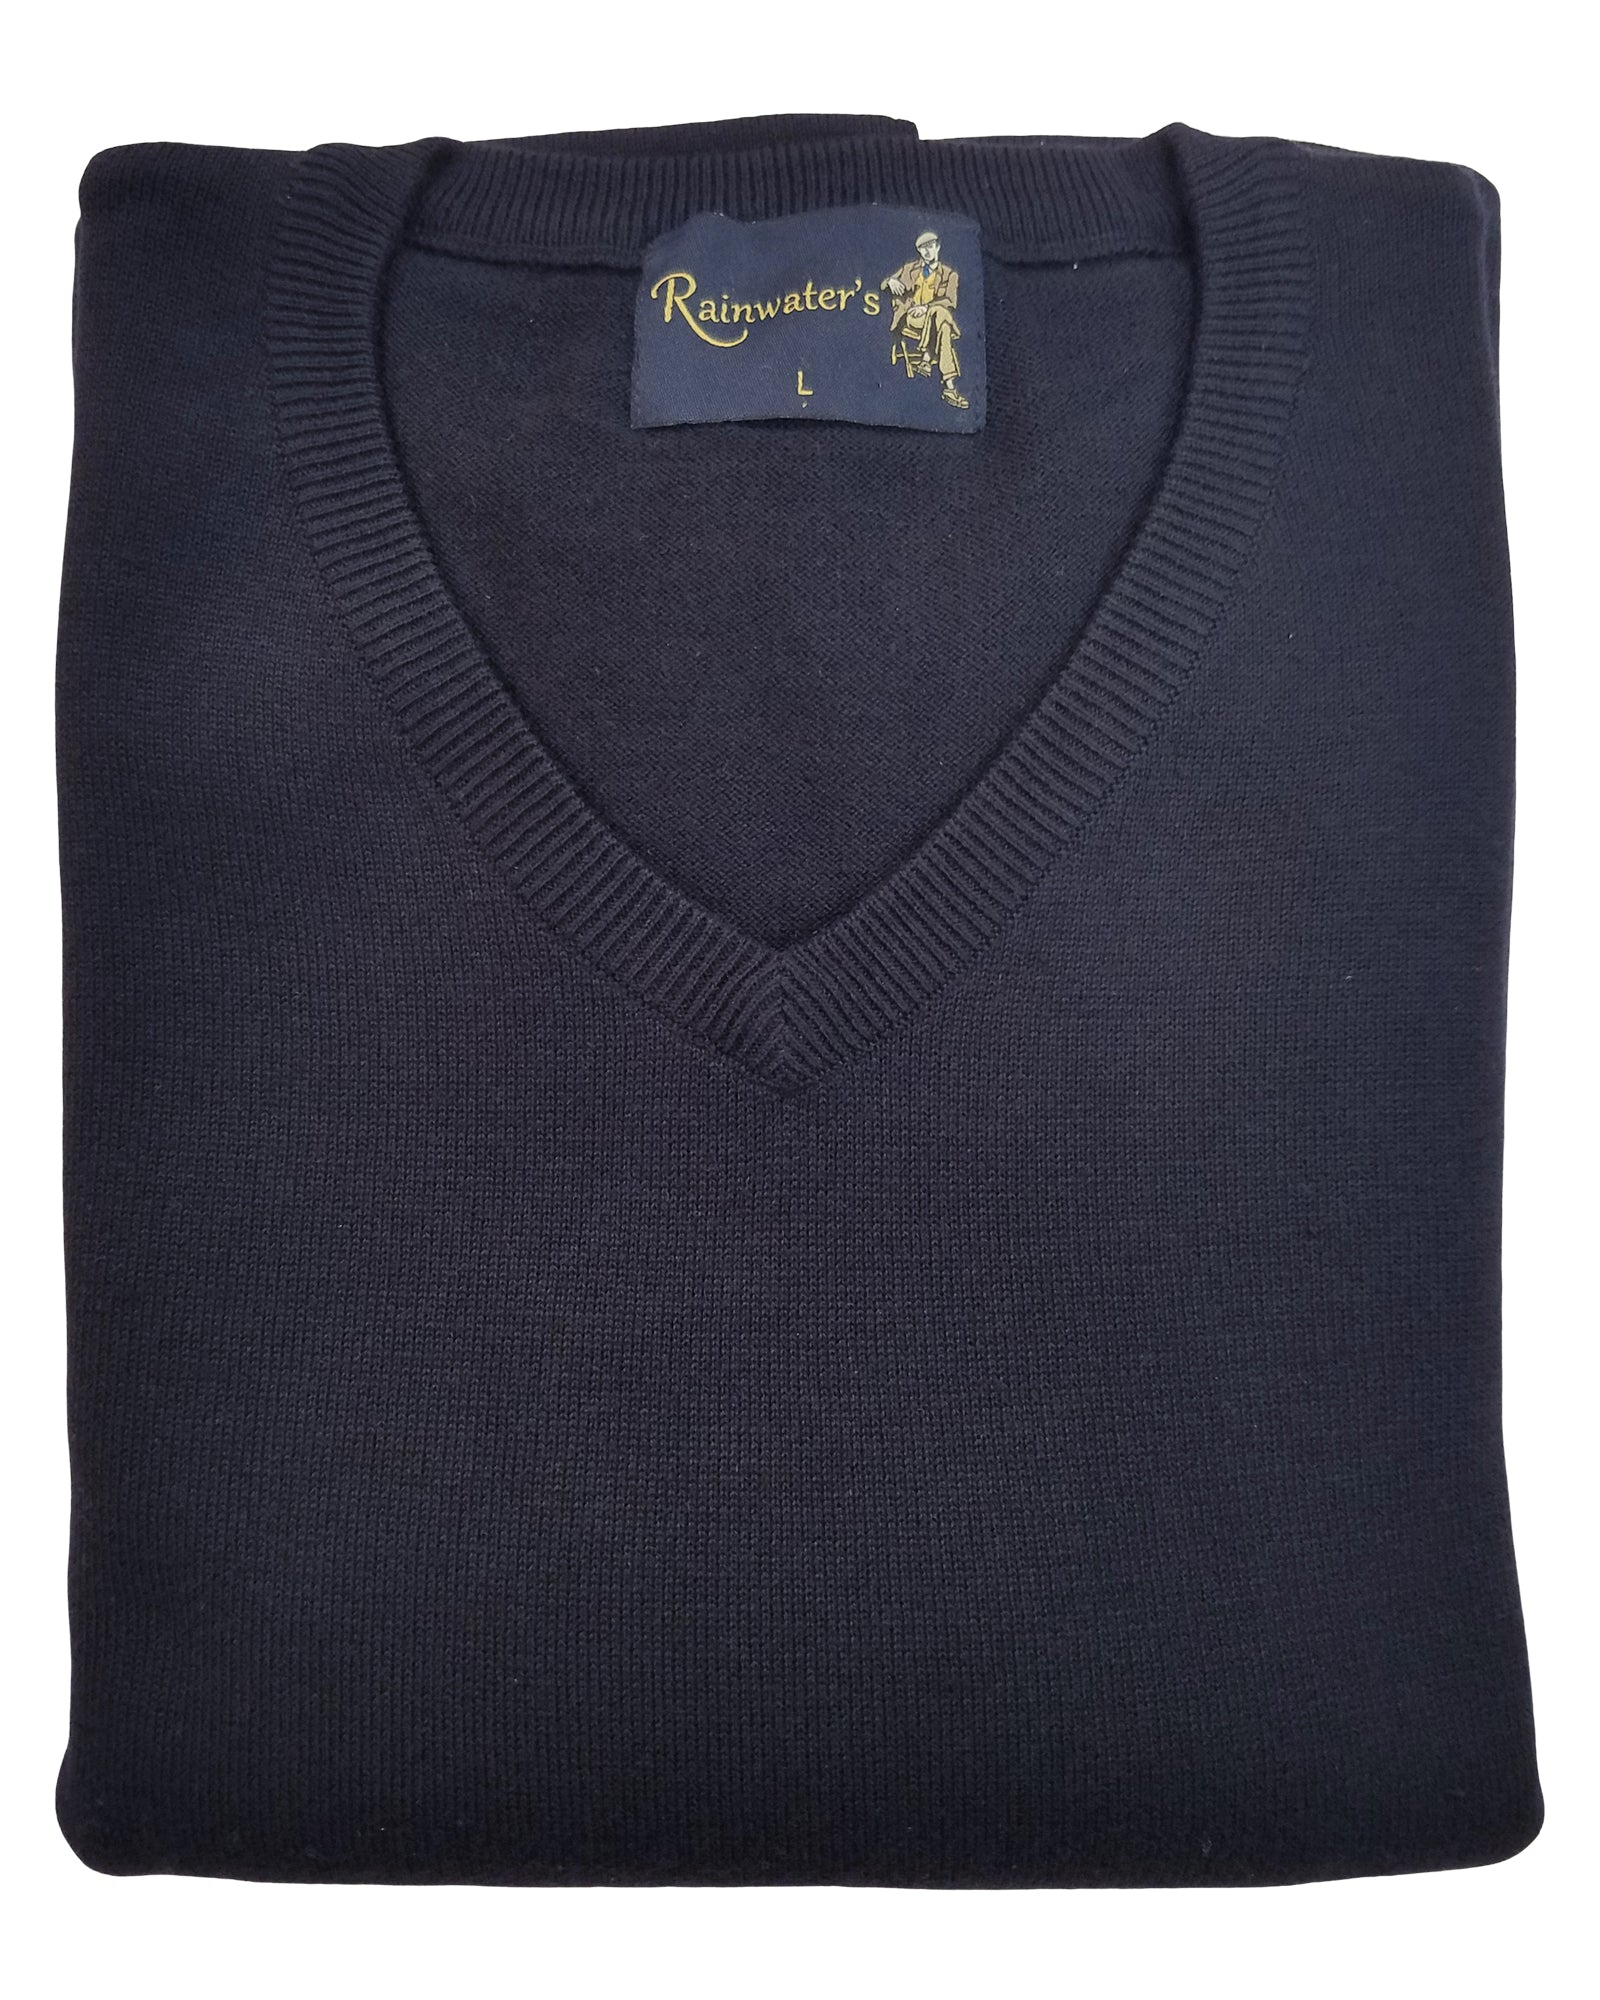 V-Neck Sweater in Navy Cotton Blend - Rainwater's